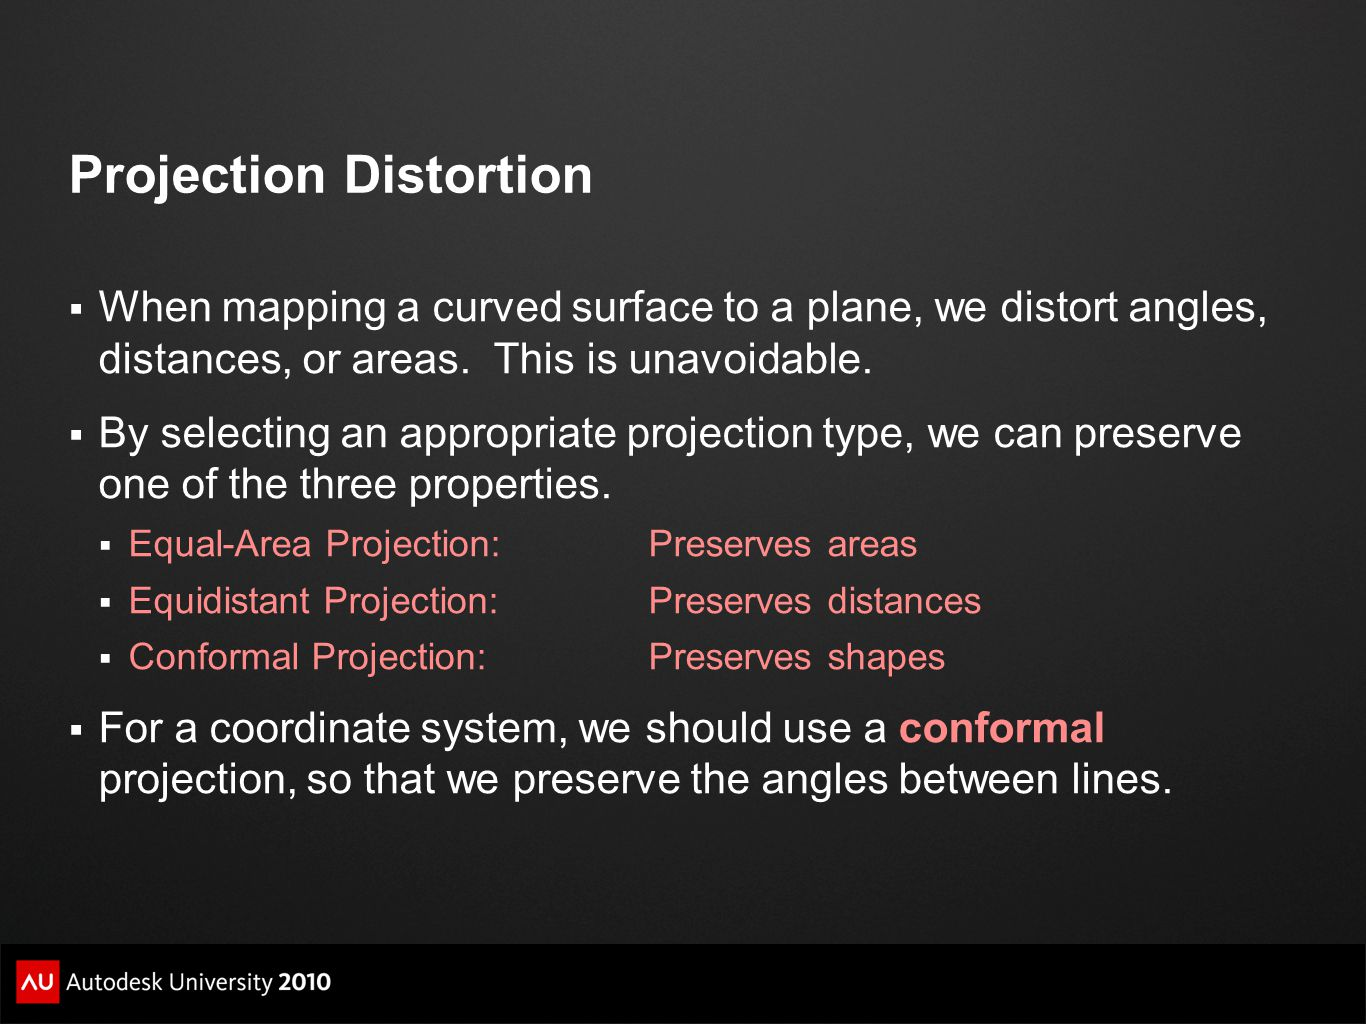 Projection Distortion